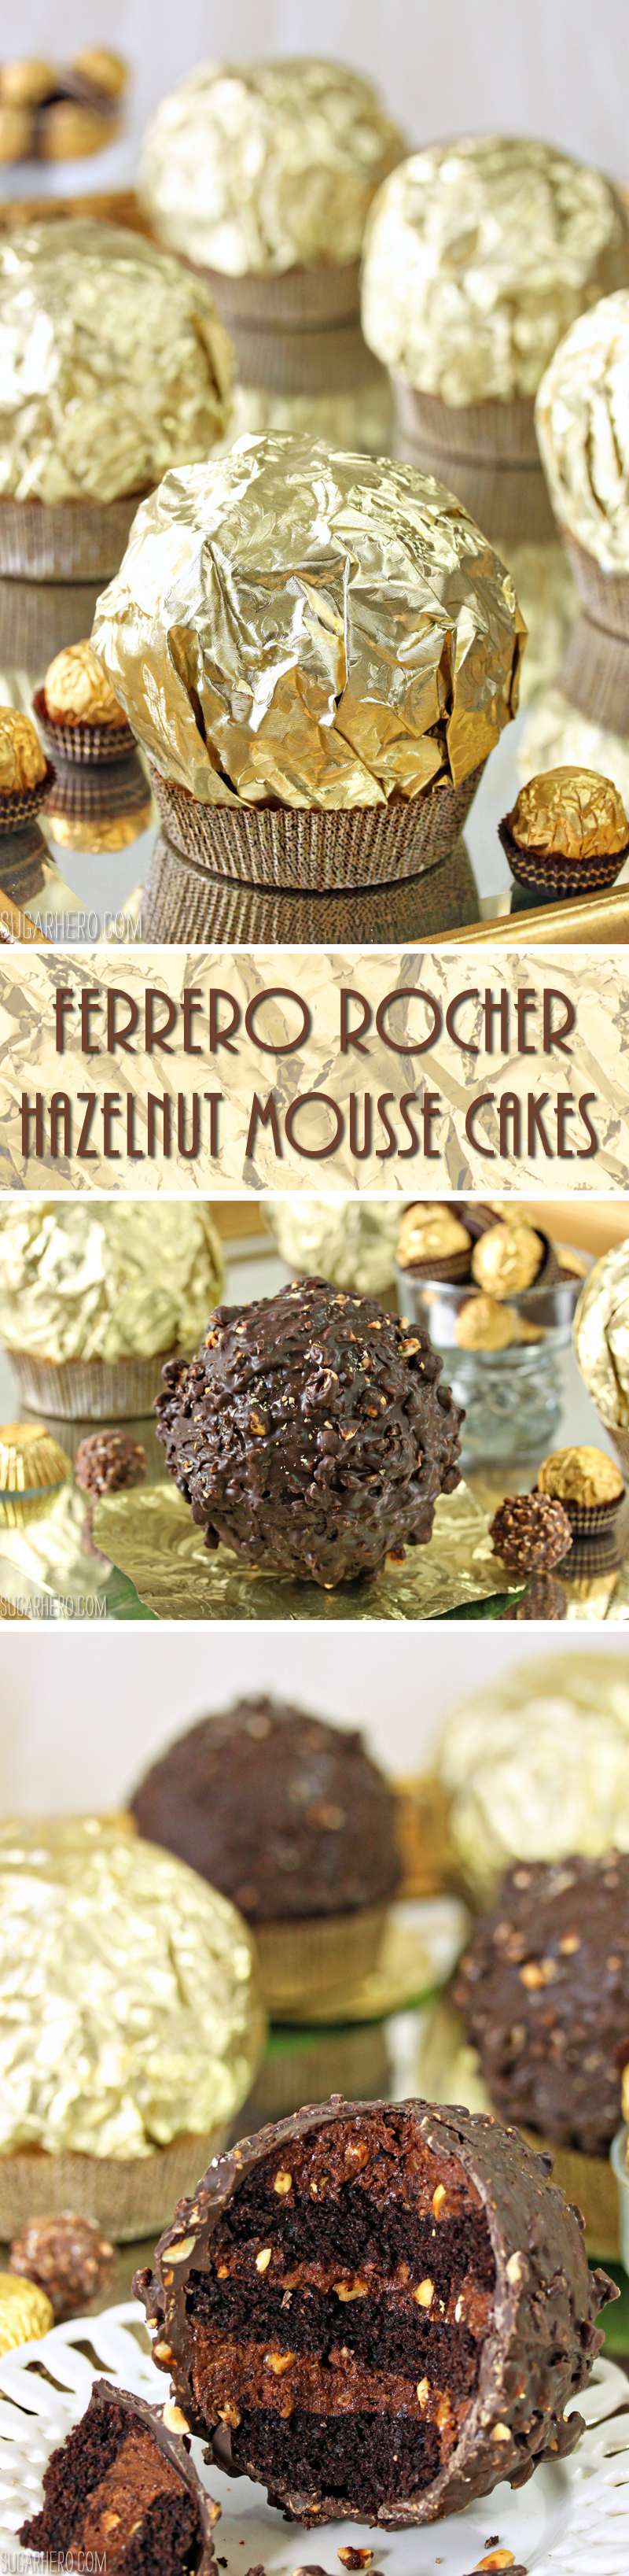 Giant Ferrero Rocher Hazelnut Mousse Cakes - full of chocolate cake and hazelnut mousse | From SugarHero.com